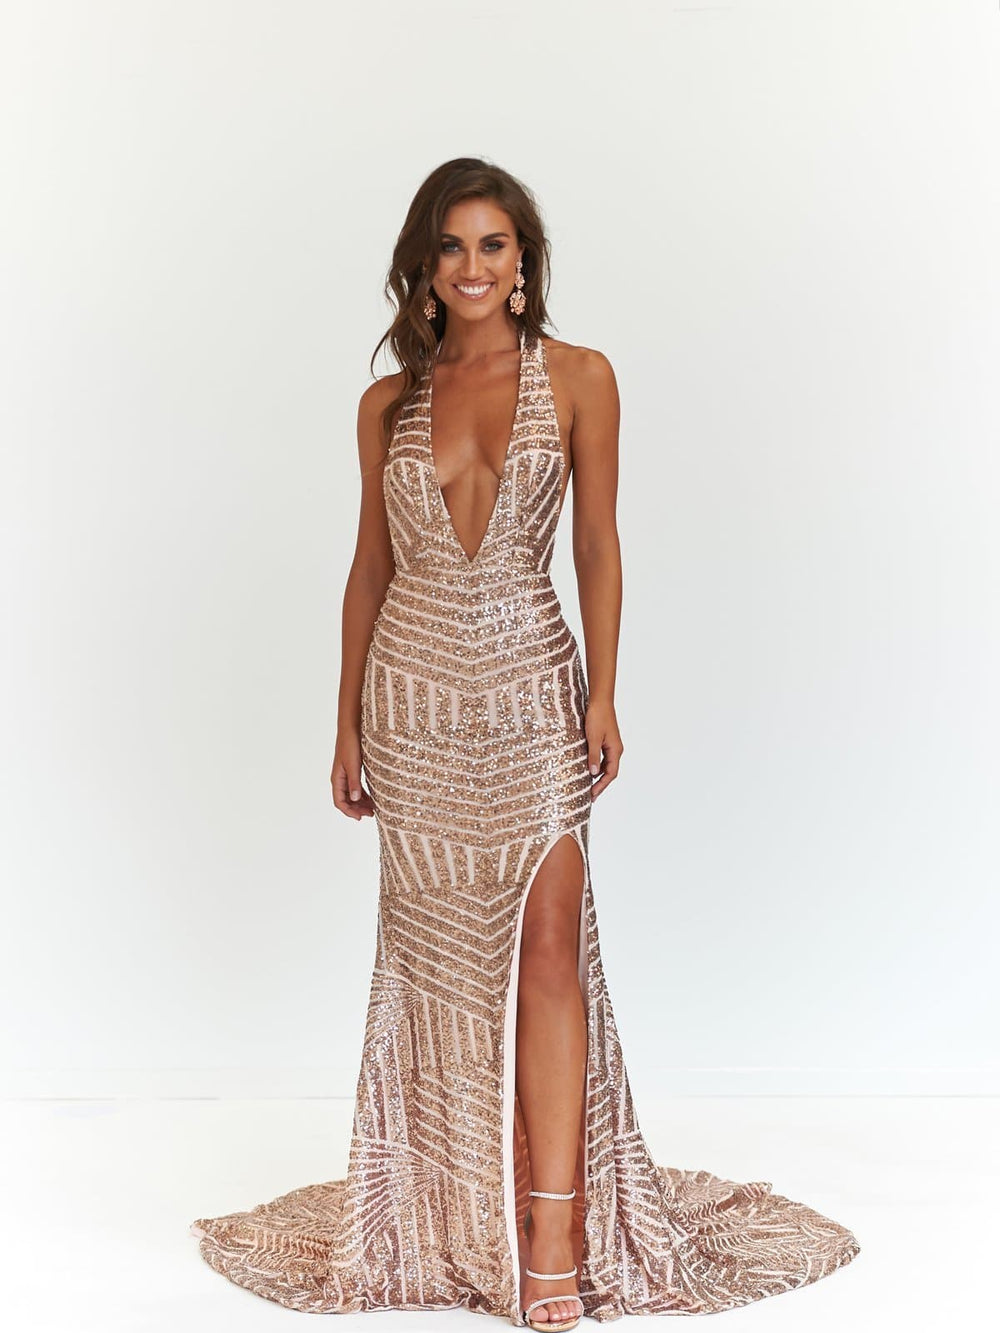 Cleopatra Formal Dress - Rose Gold Sequins V Neck Maxi Slit Mermaid Gown